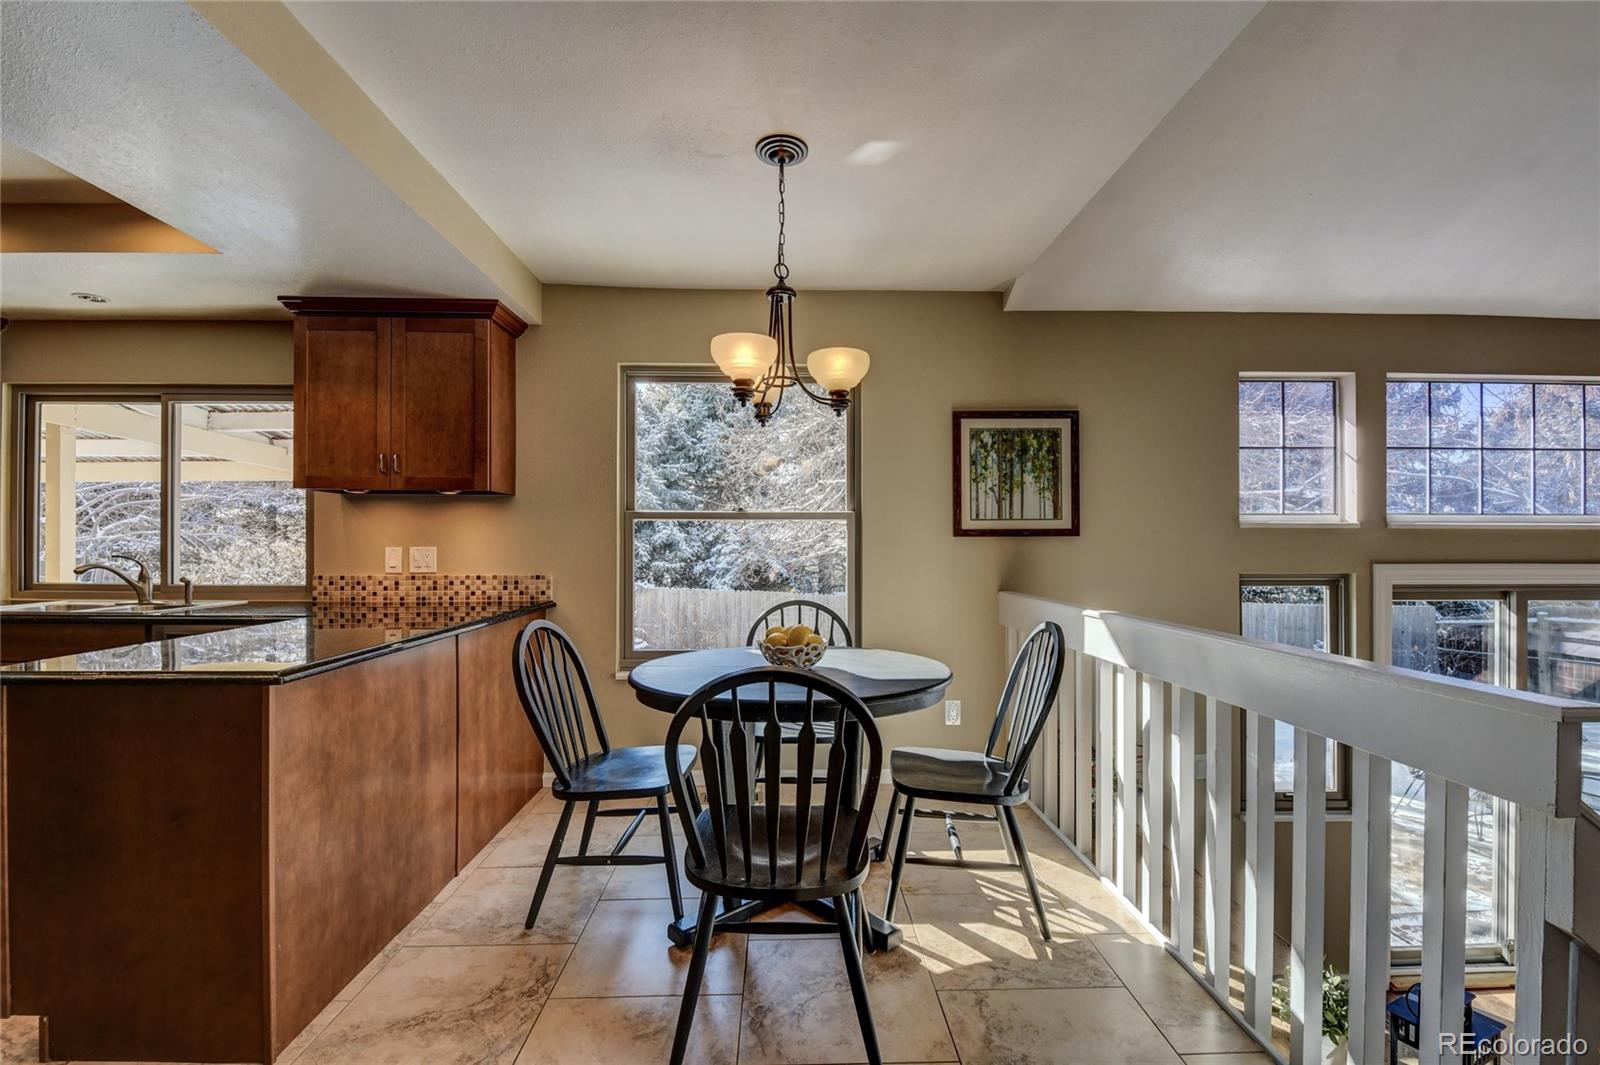 MLS# 9798515 - 19 - 5830 E Caley Drive, Centennial, CO 80111